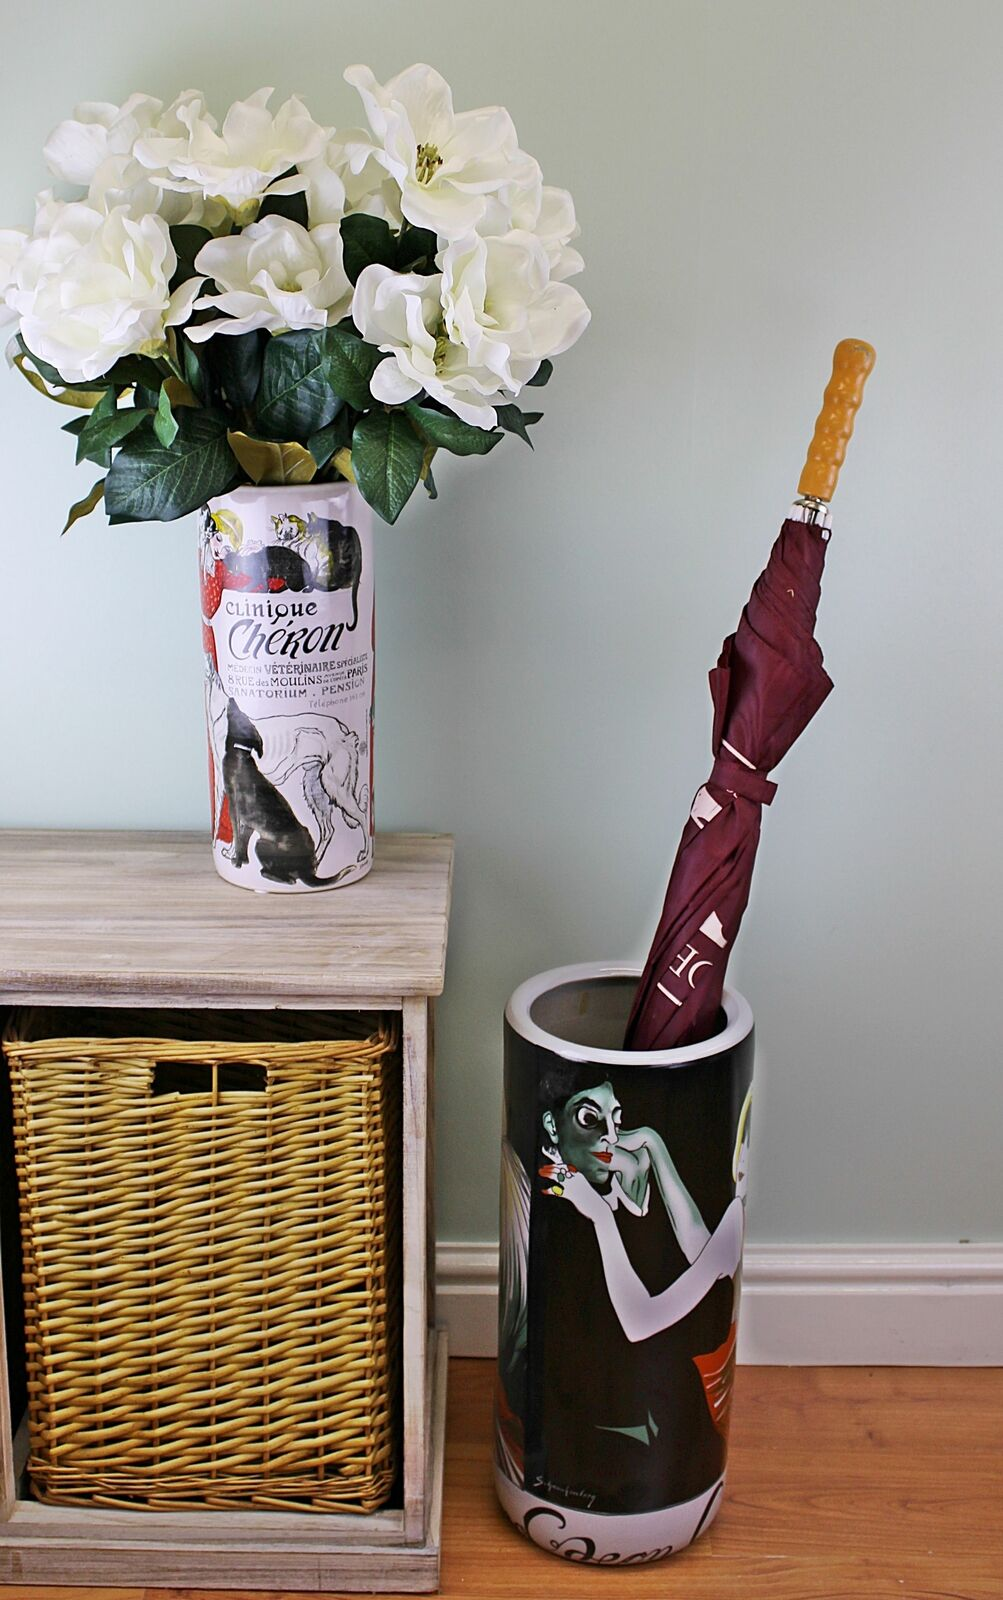 Umbrella stand, odeon casino design with free vase